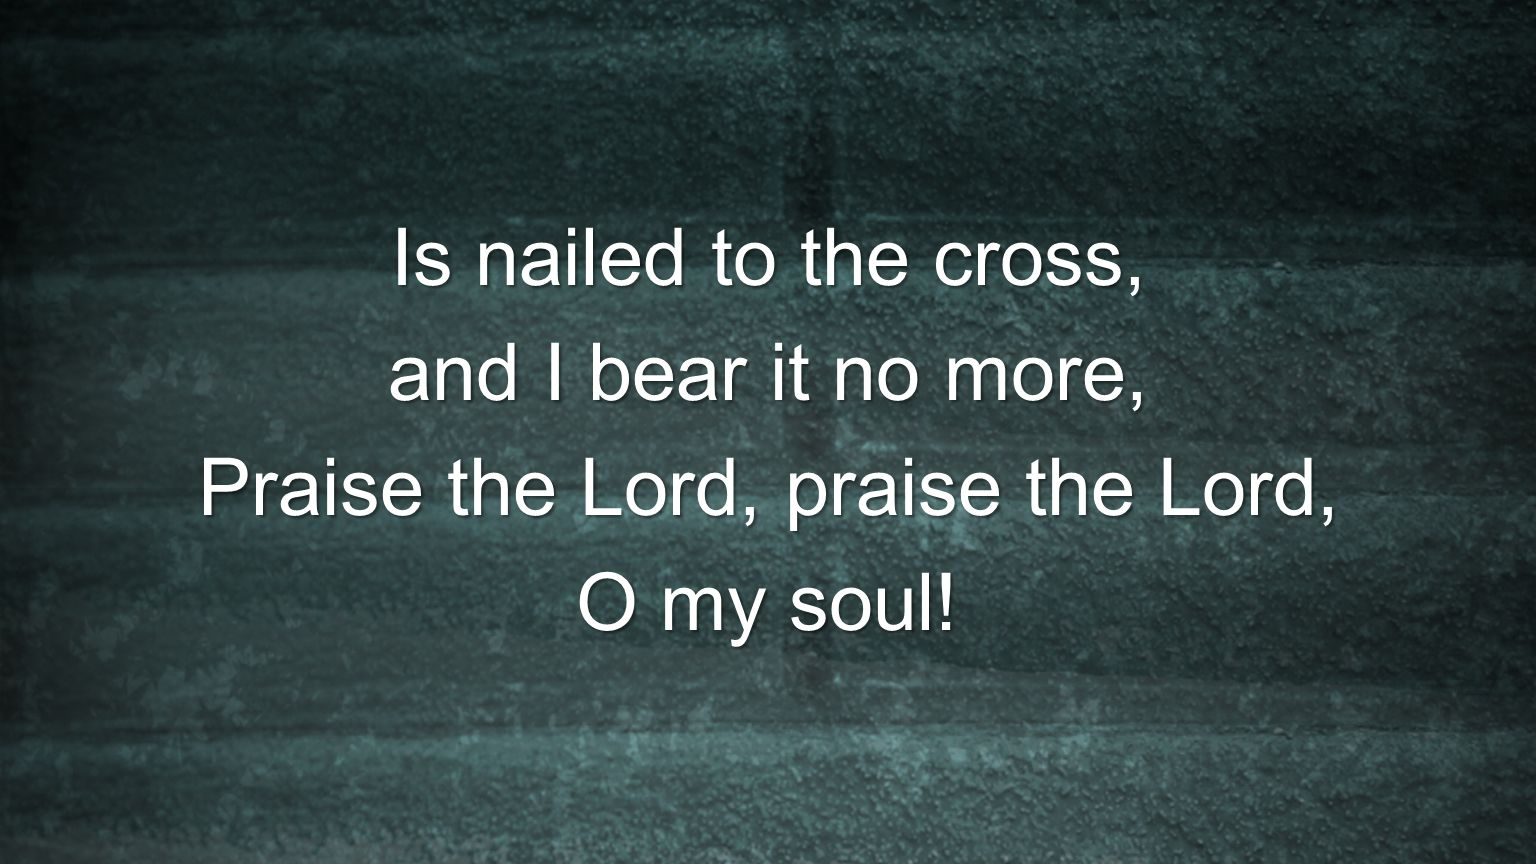 Praise the Lord, praise the Lord,